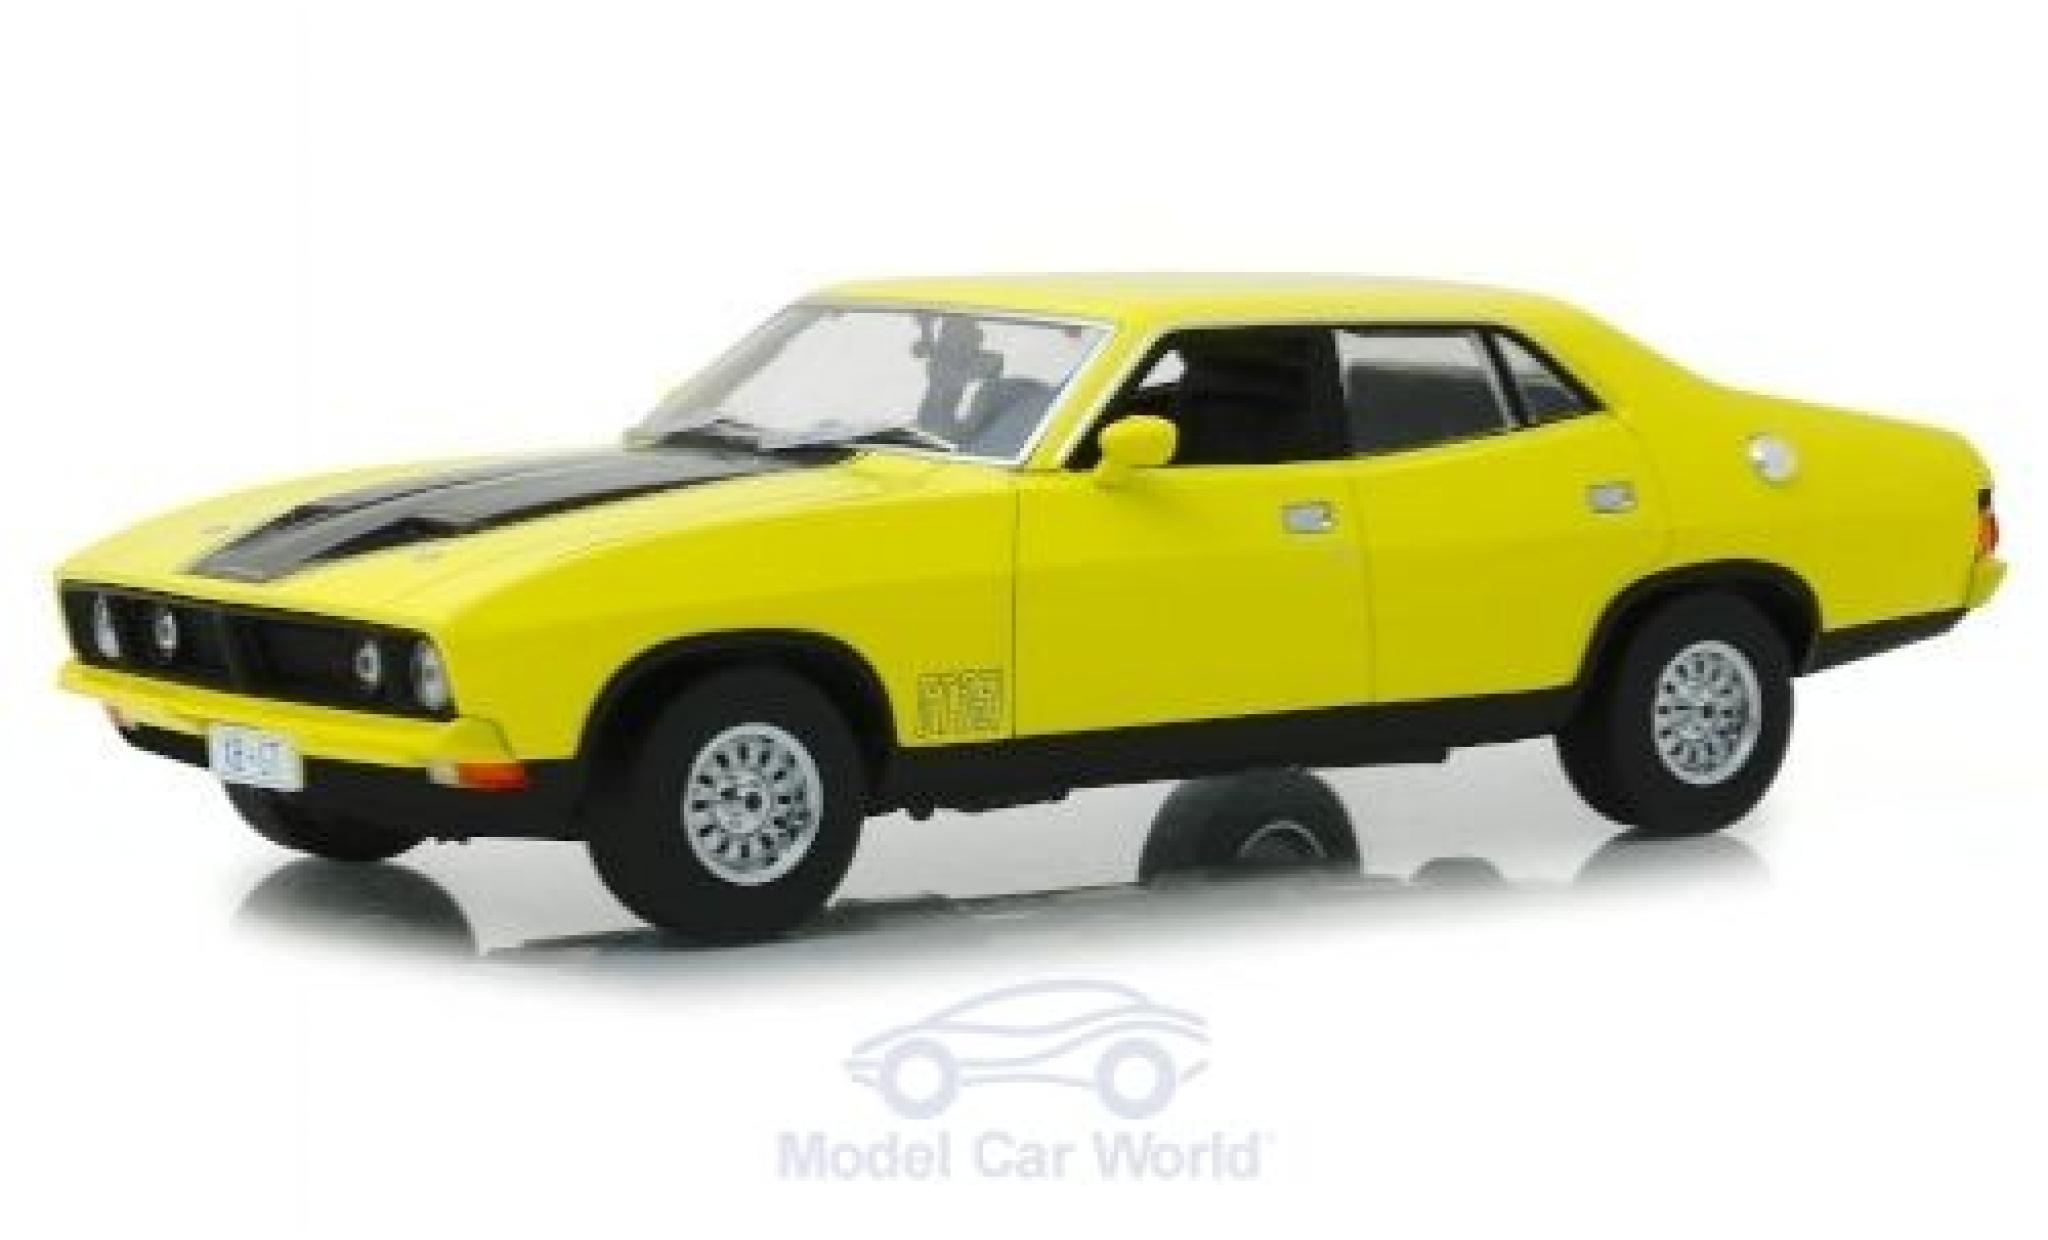 Ford Falcon 1/18 Greenlight XB GT351 jaune/noire RHD 1974